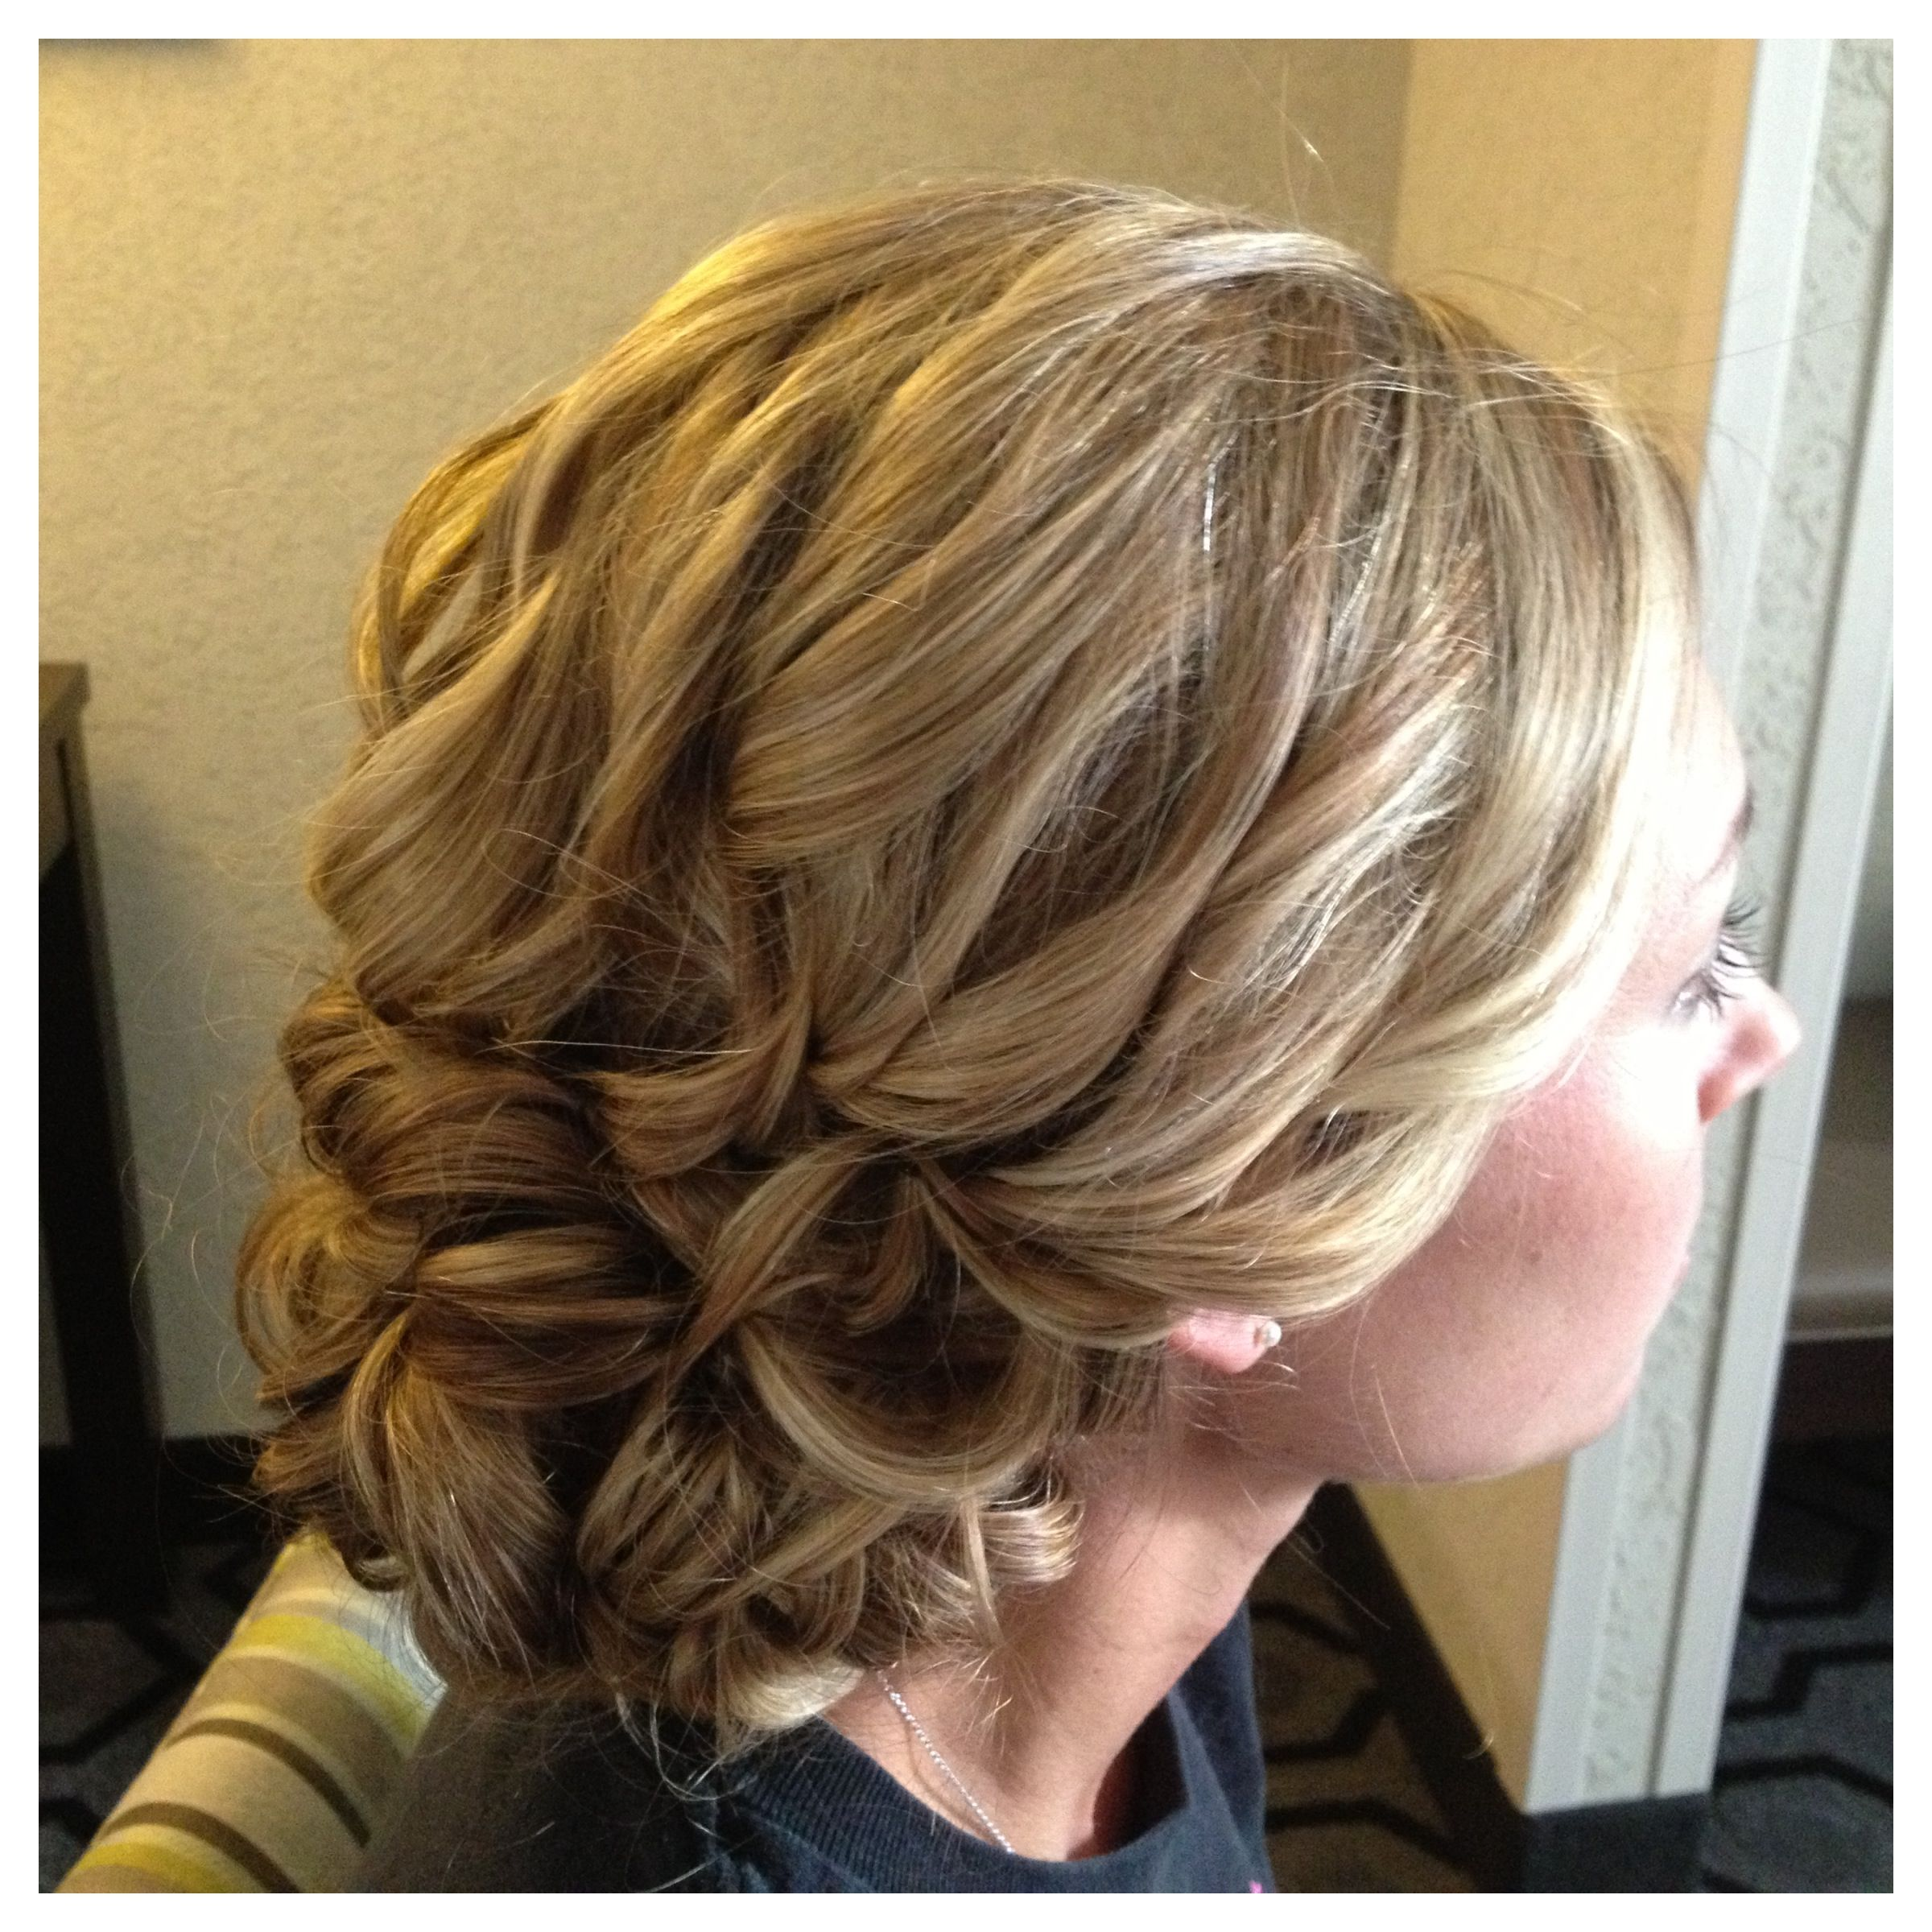 965 Best Wedding Hairstyles Images On Pinterest: Best 25+ Wedding Low Buns Ideas On Pinterest